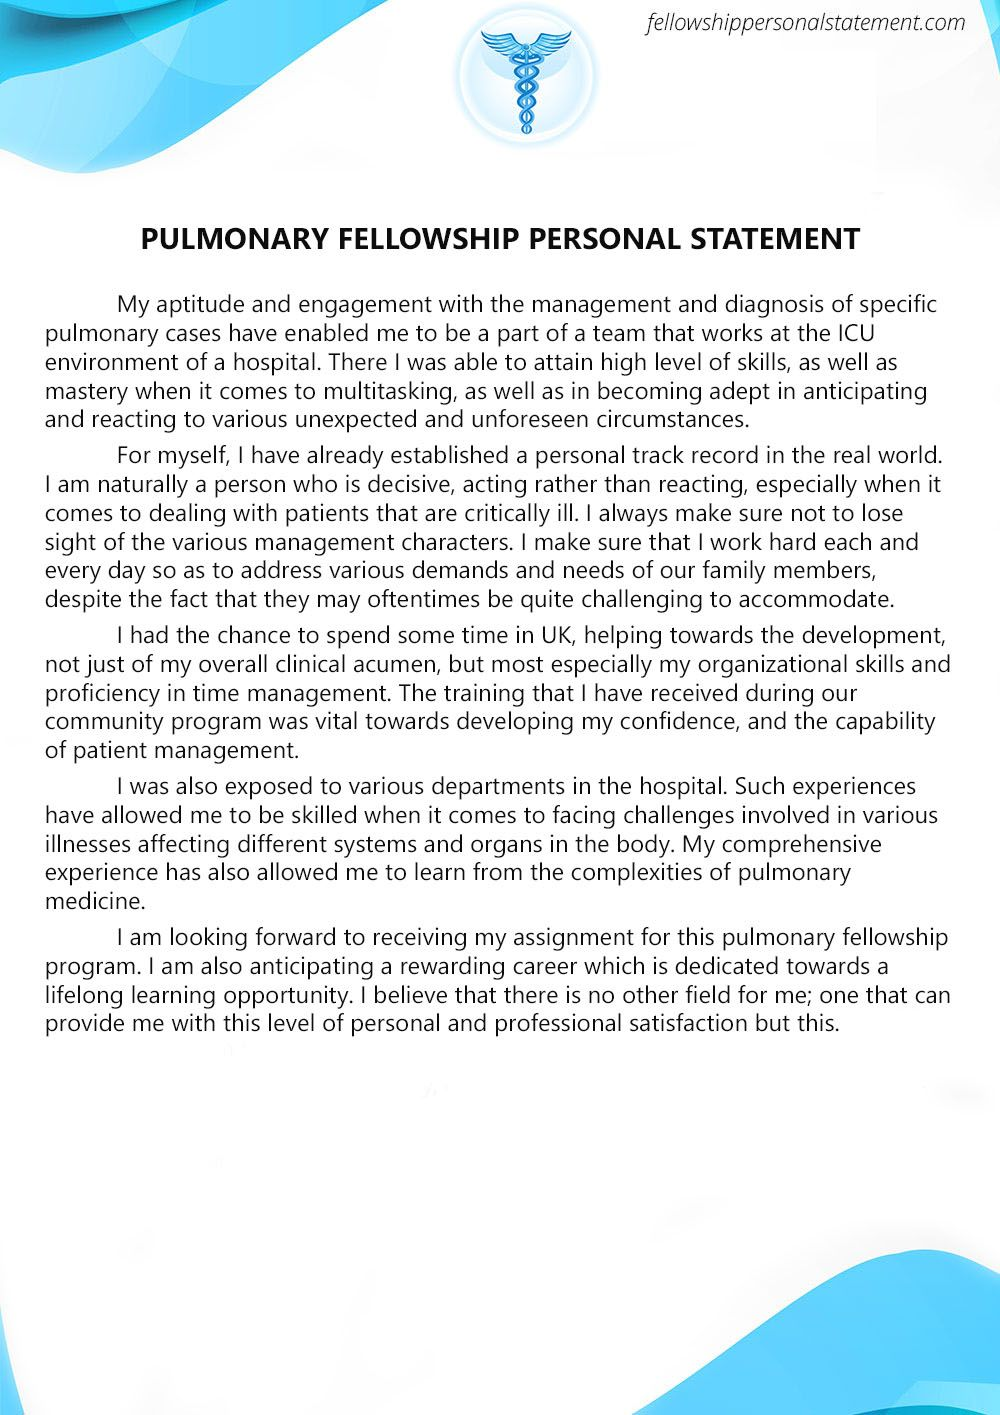 Pulmonary Fellowship Personal Statement  Pulmonary Fellowship